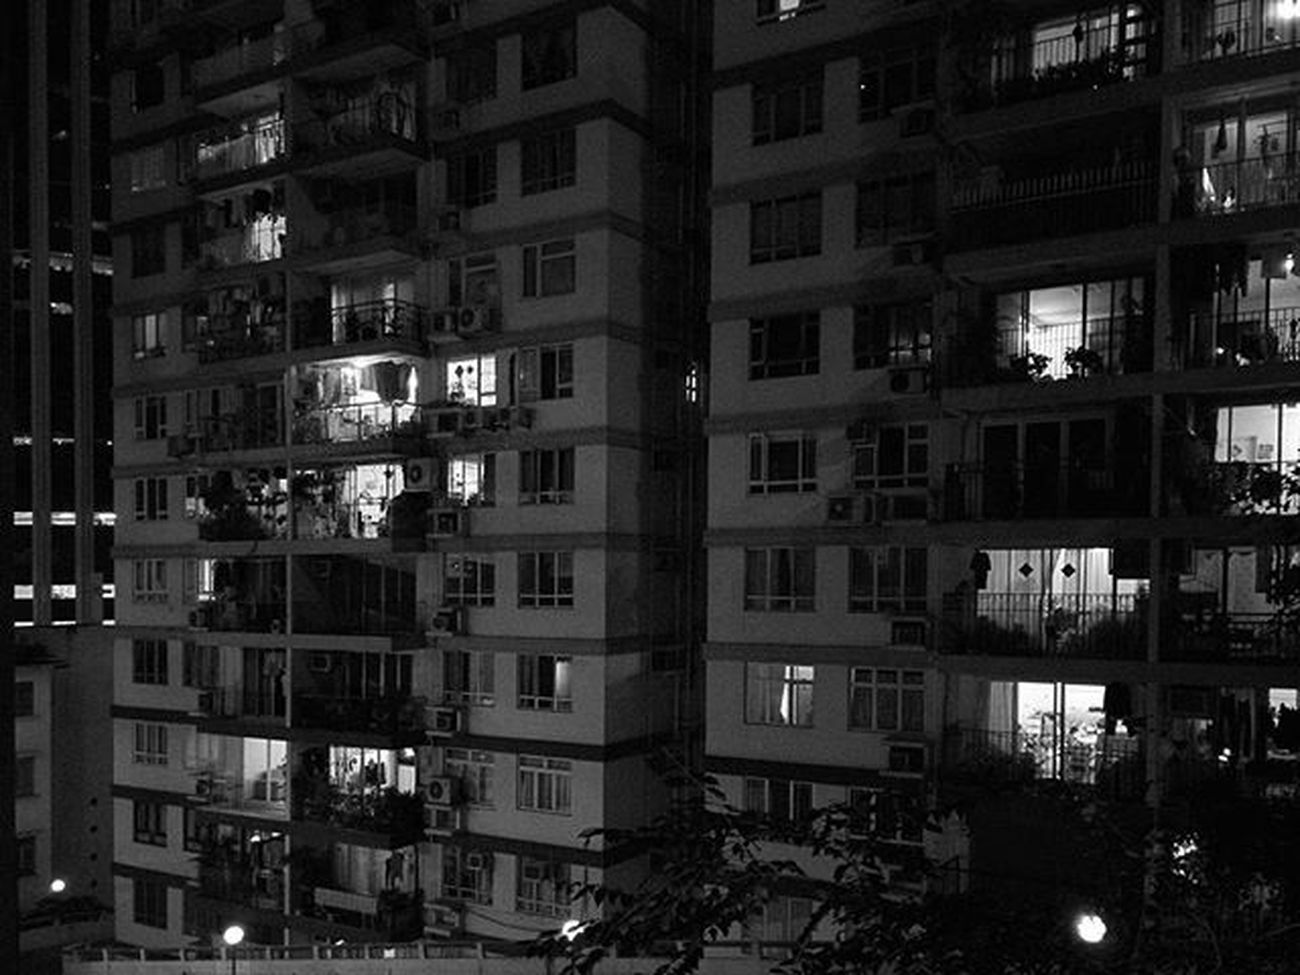 🌃 The Virtue of Privacy Wanchai Night Light Buildings Hkig Instameethk Oneplusone Discoverhongkong EyeEm Art Photography Cities At Night